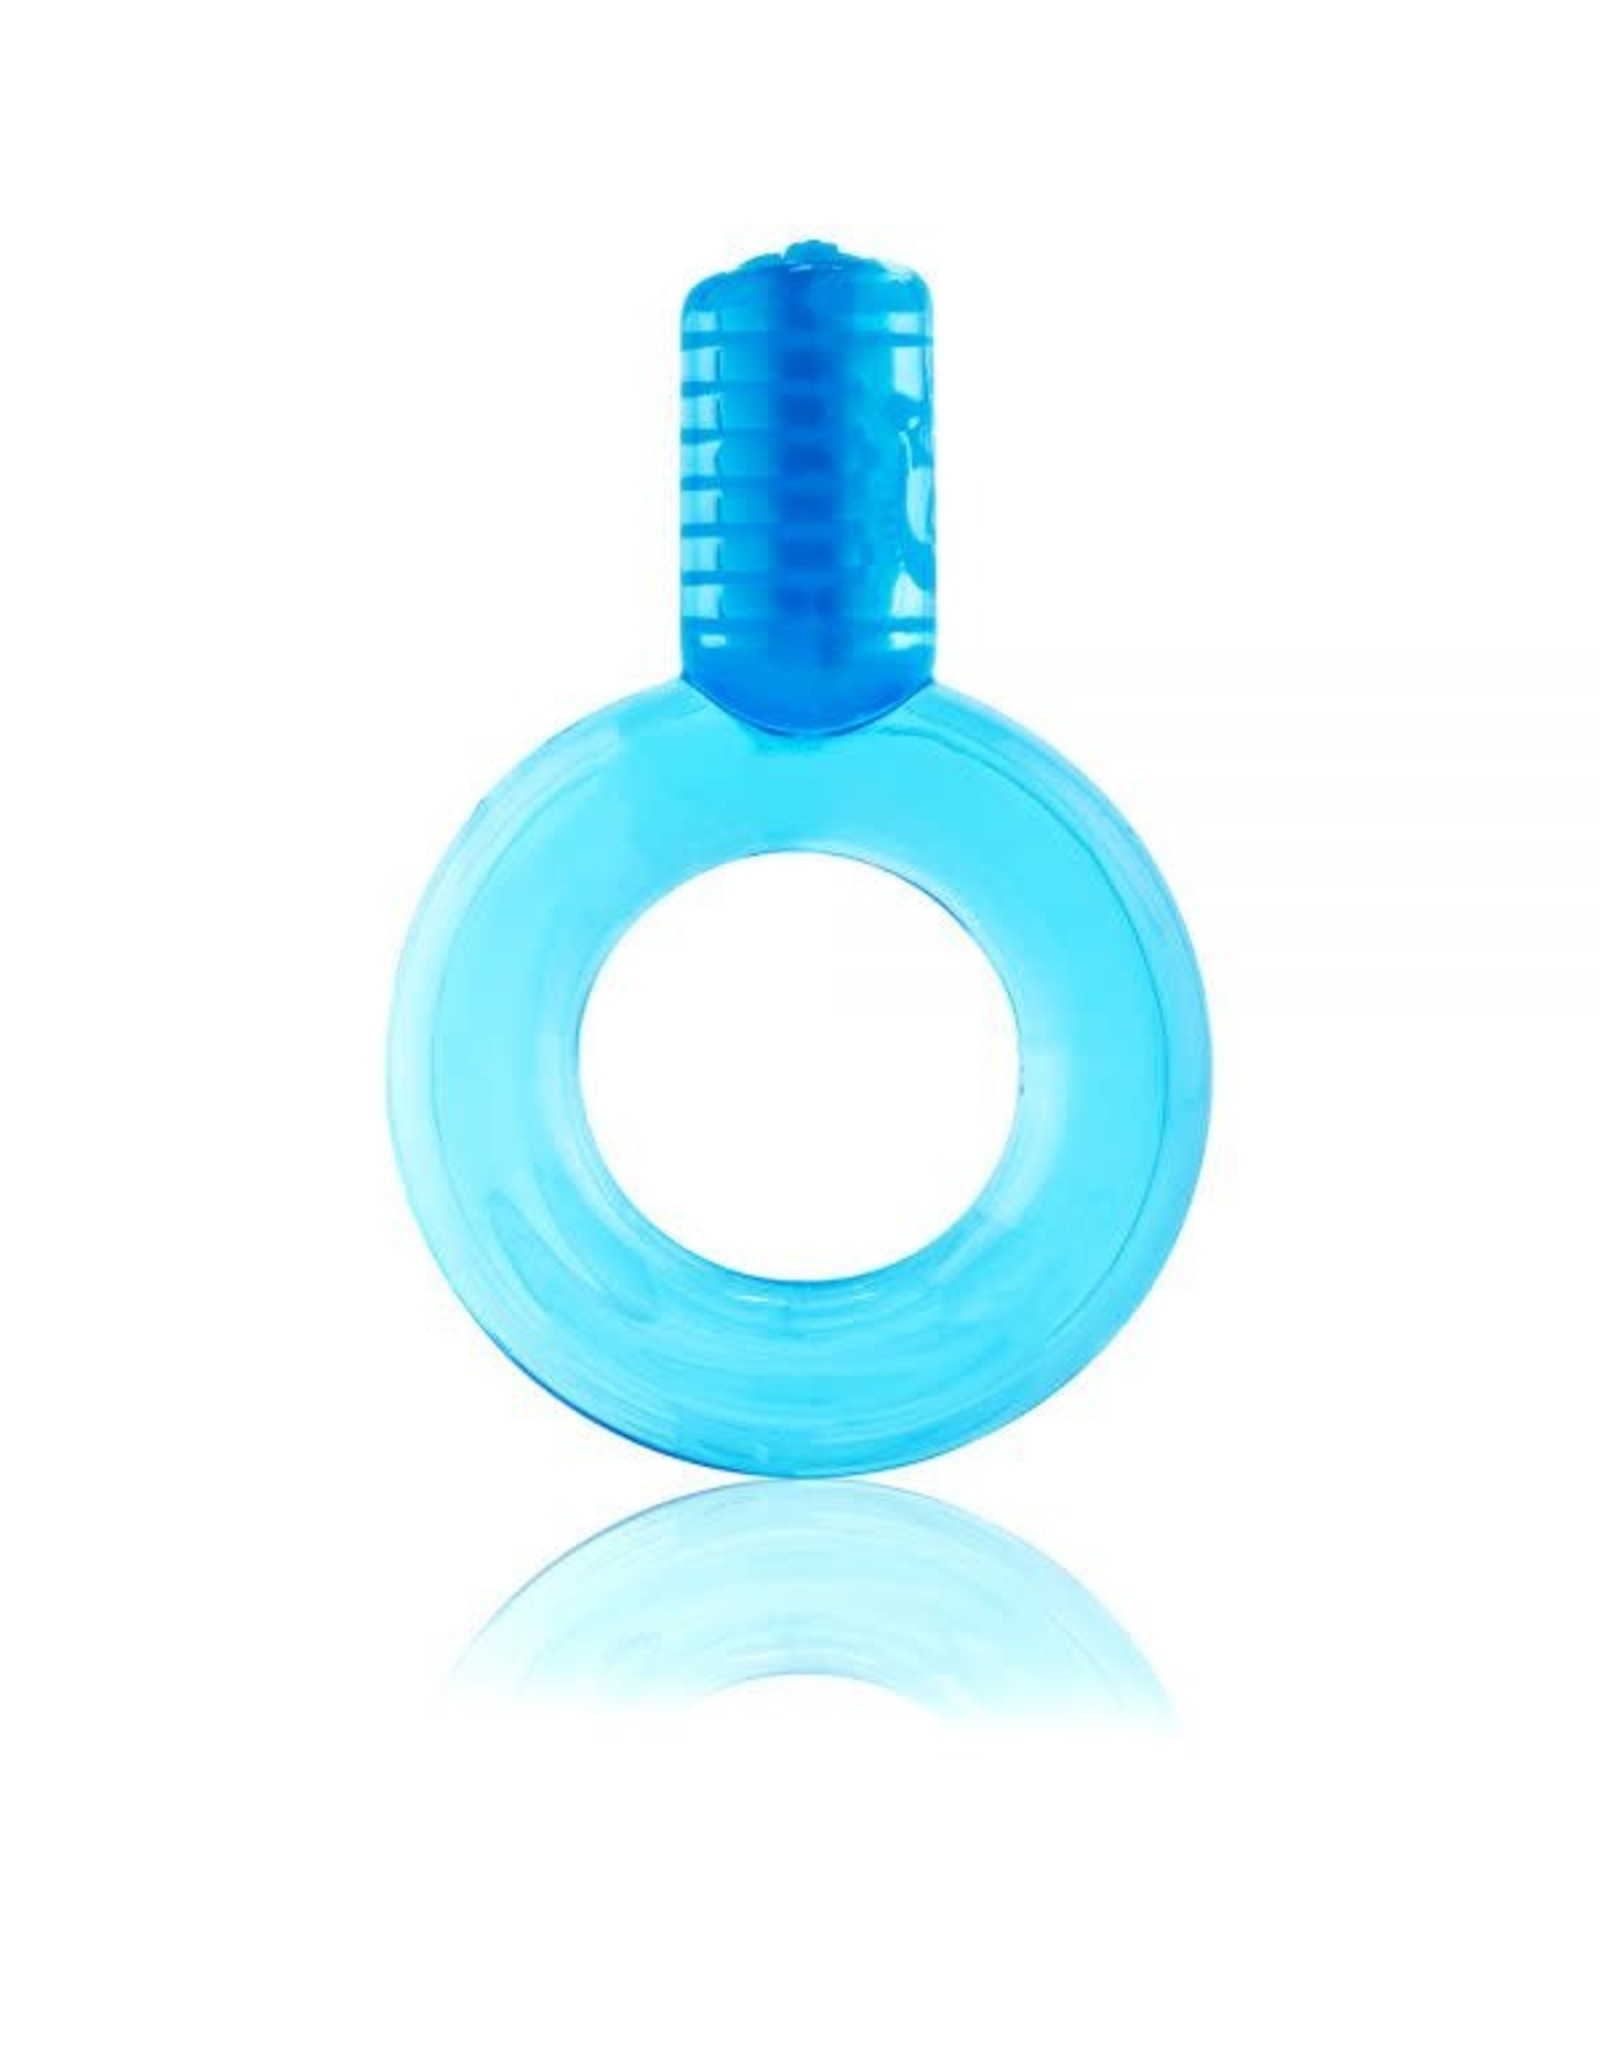 SCREAMING O SCREAMING O GO VIBE RING - BLUE